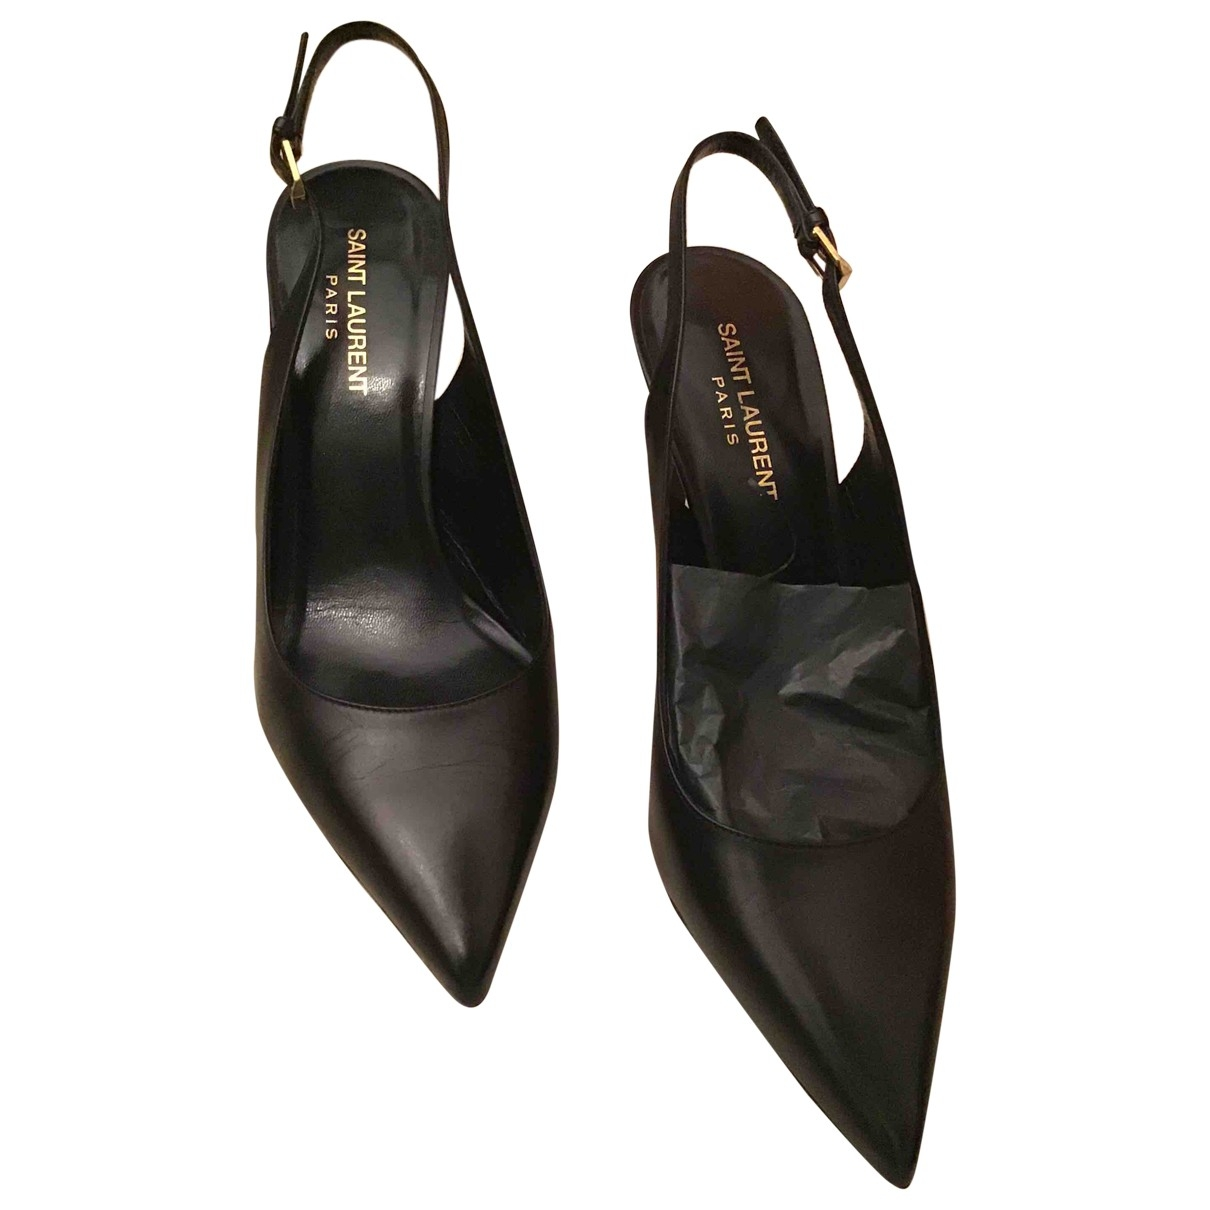 Saint Laurent \N Black Leather Heels for Women 39 EU